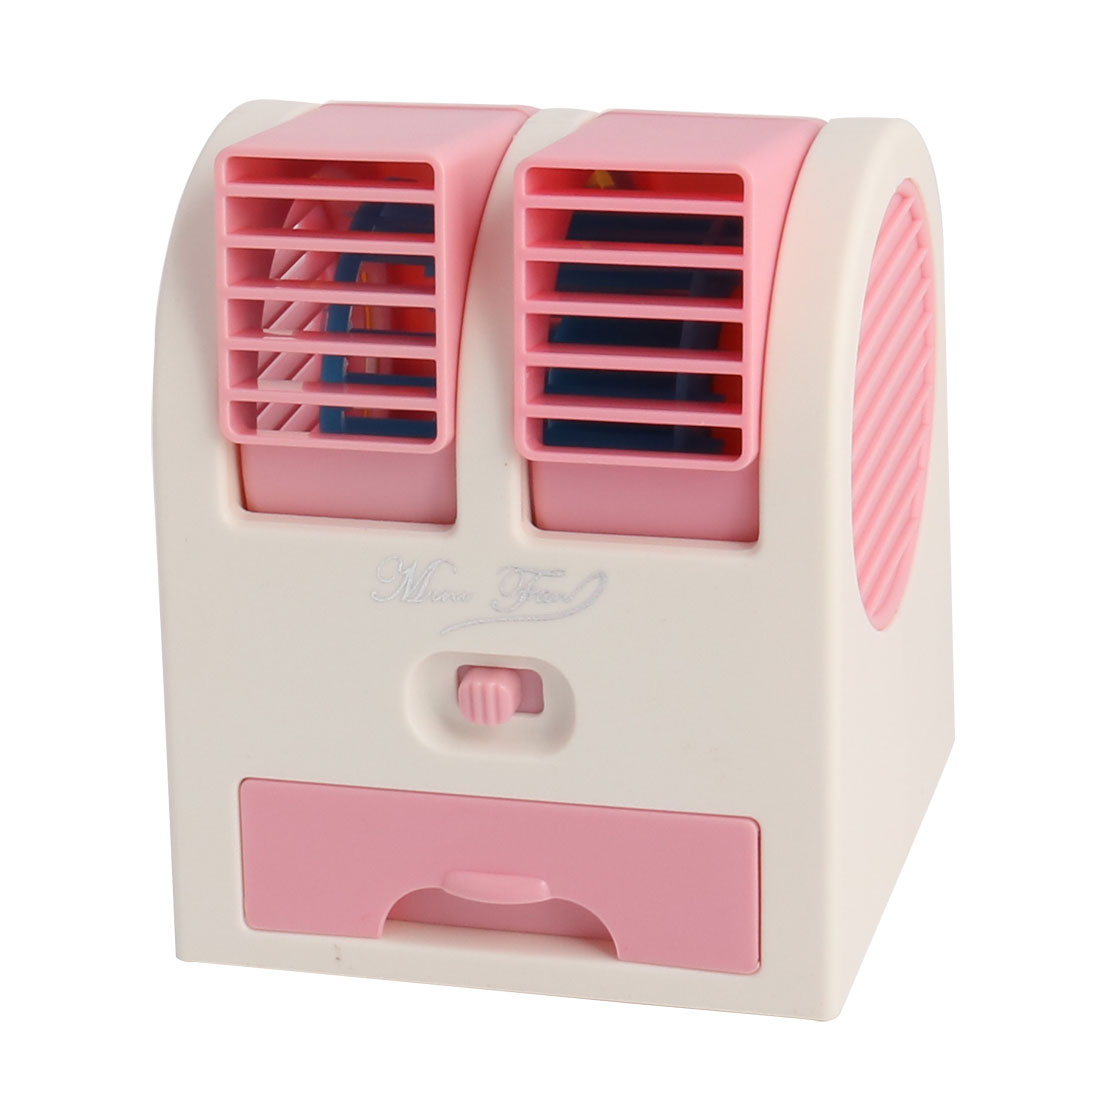 Small Portable Air Conditioner Quiet